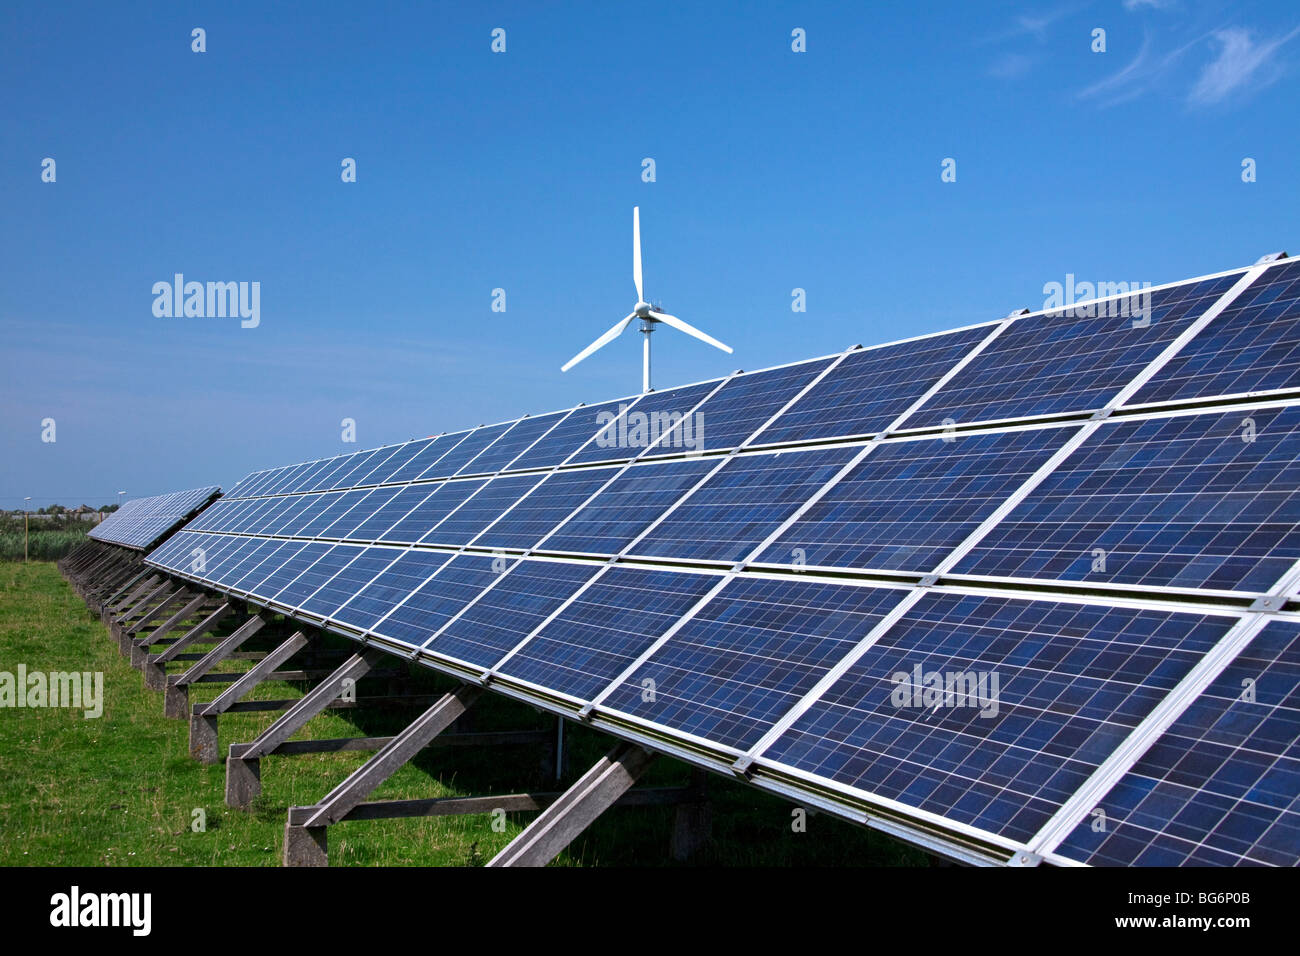 Wind turbine and photovoltaic solar panels for electricity production - Stock Image